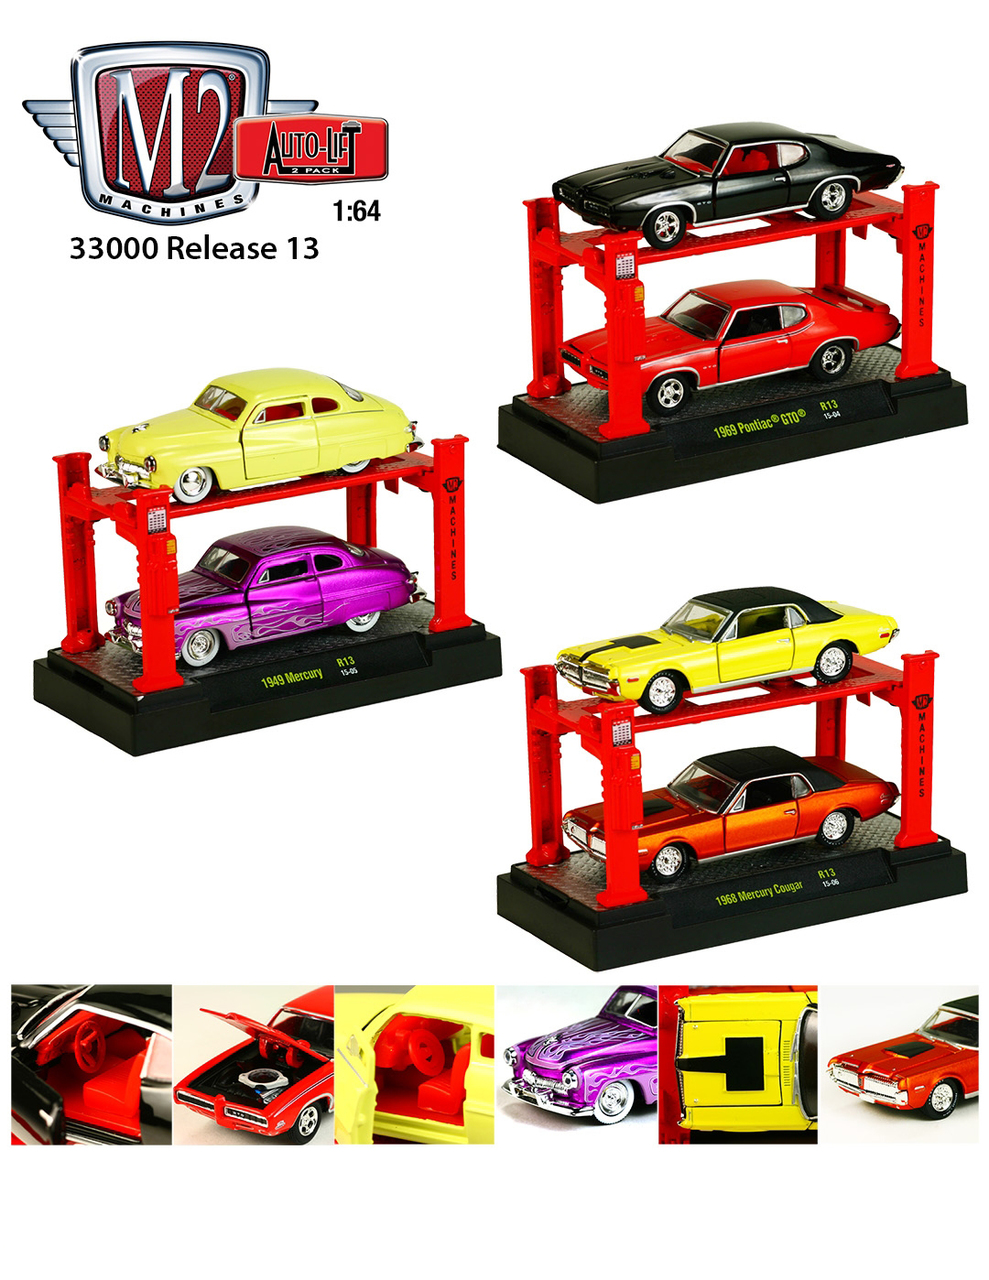 Auto Lift Series 13 6pc Diecast Car Set 1/64 Diecast Model Cars by M2 Machines